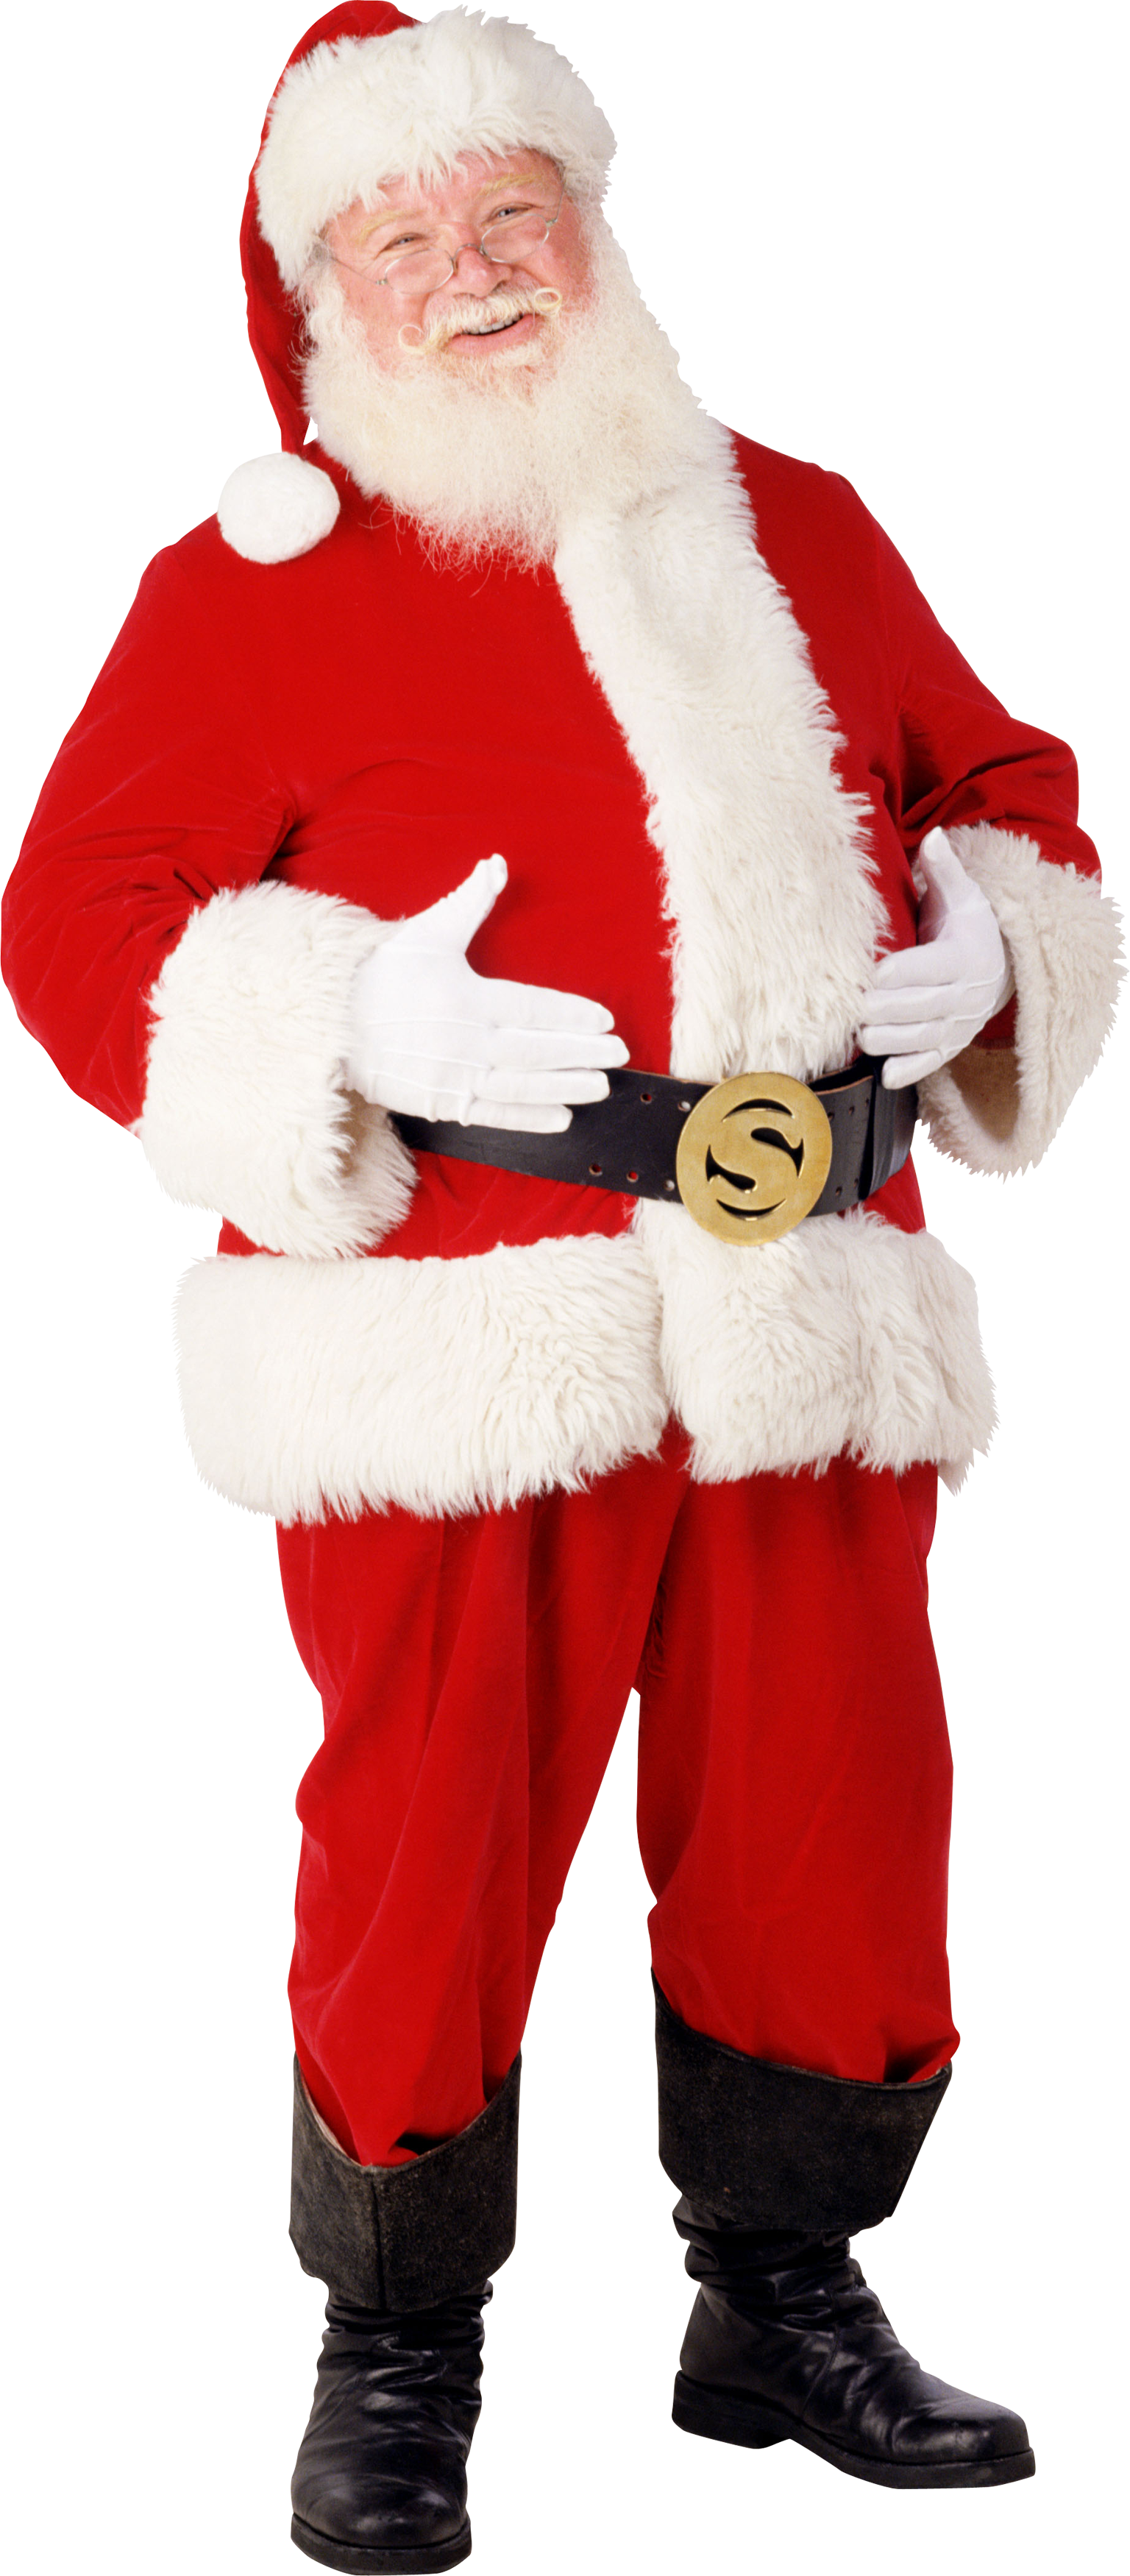 Download and use Santa Claus PNG Image